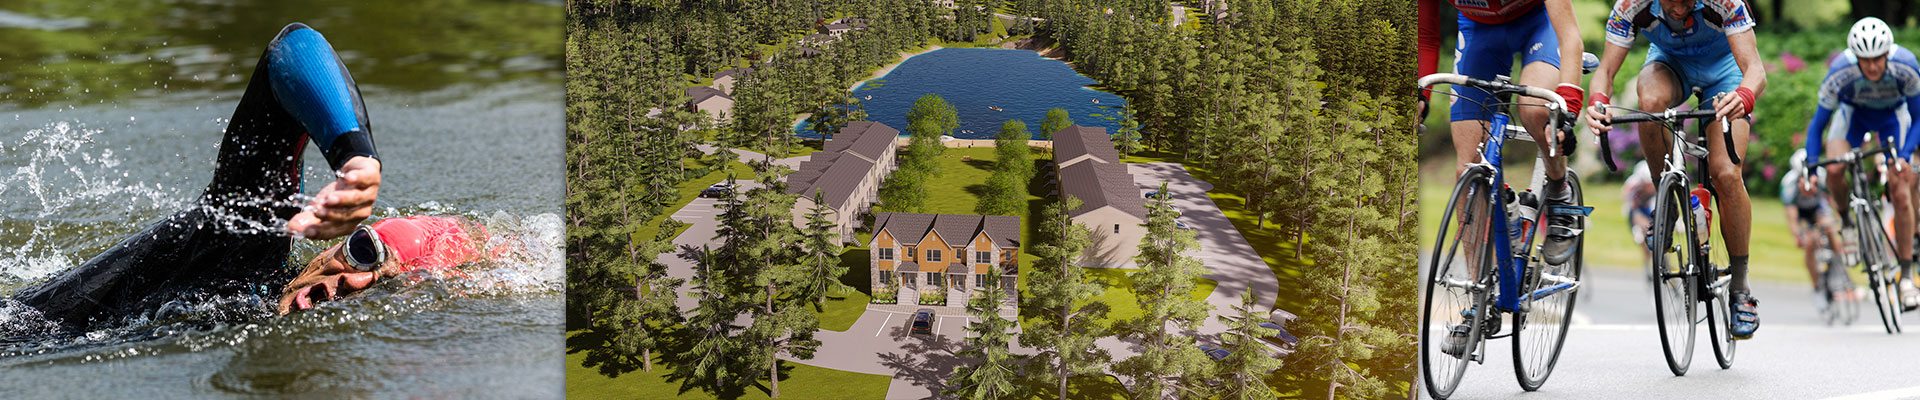 Real estate project photo gallery, Tremblant, Laurentians